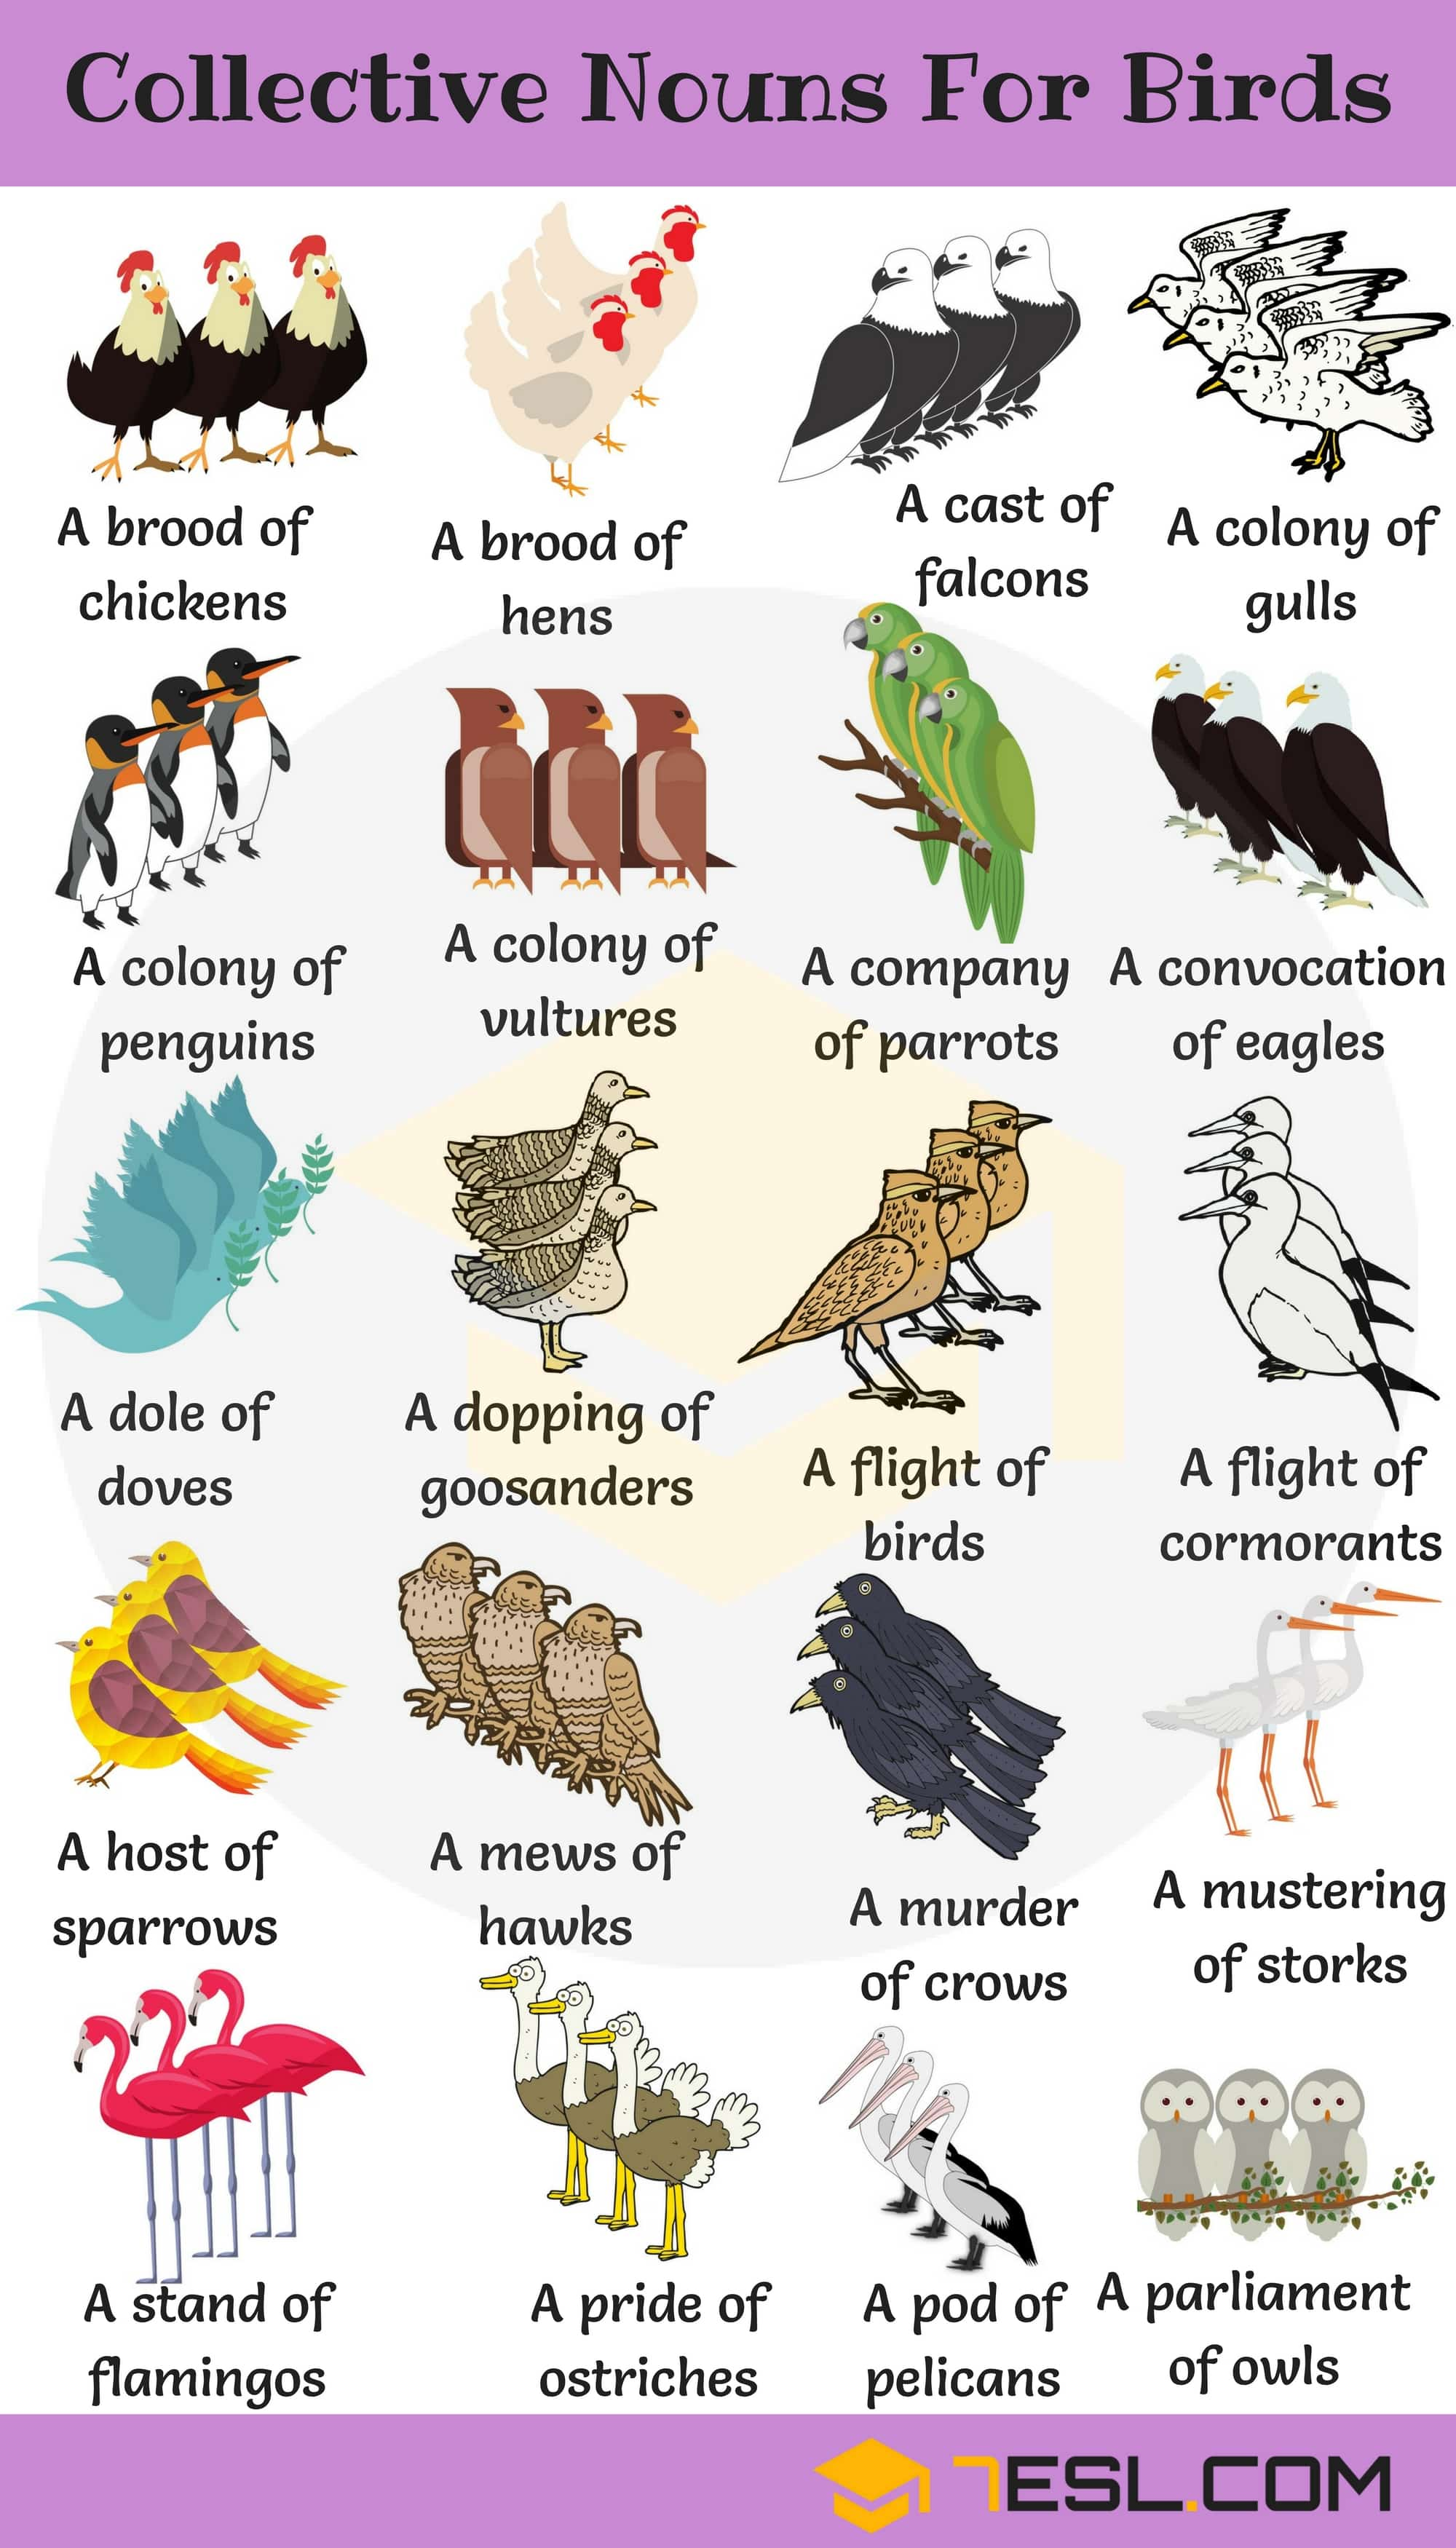 Bird Group Names Image